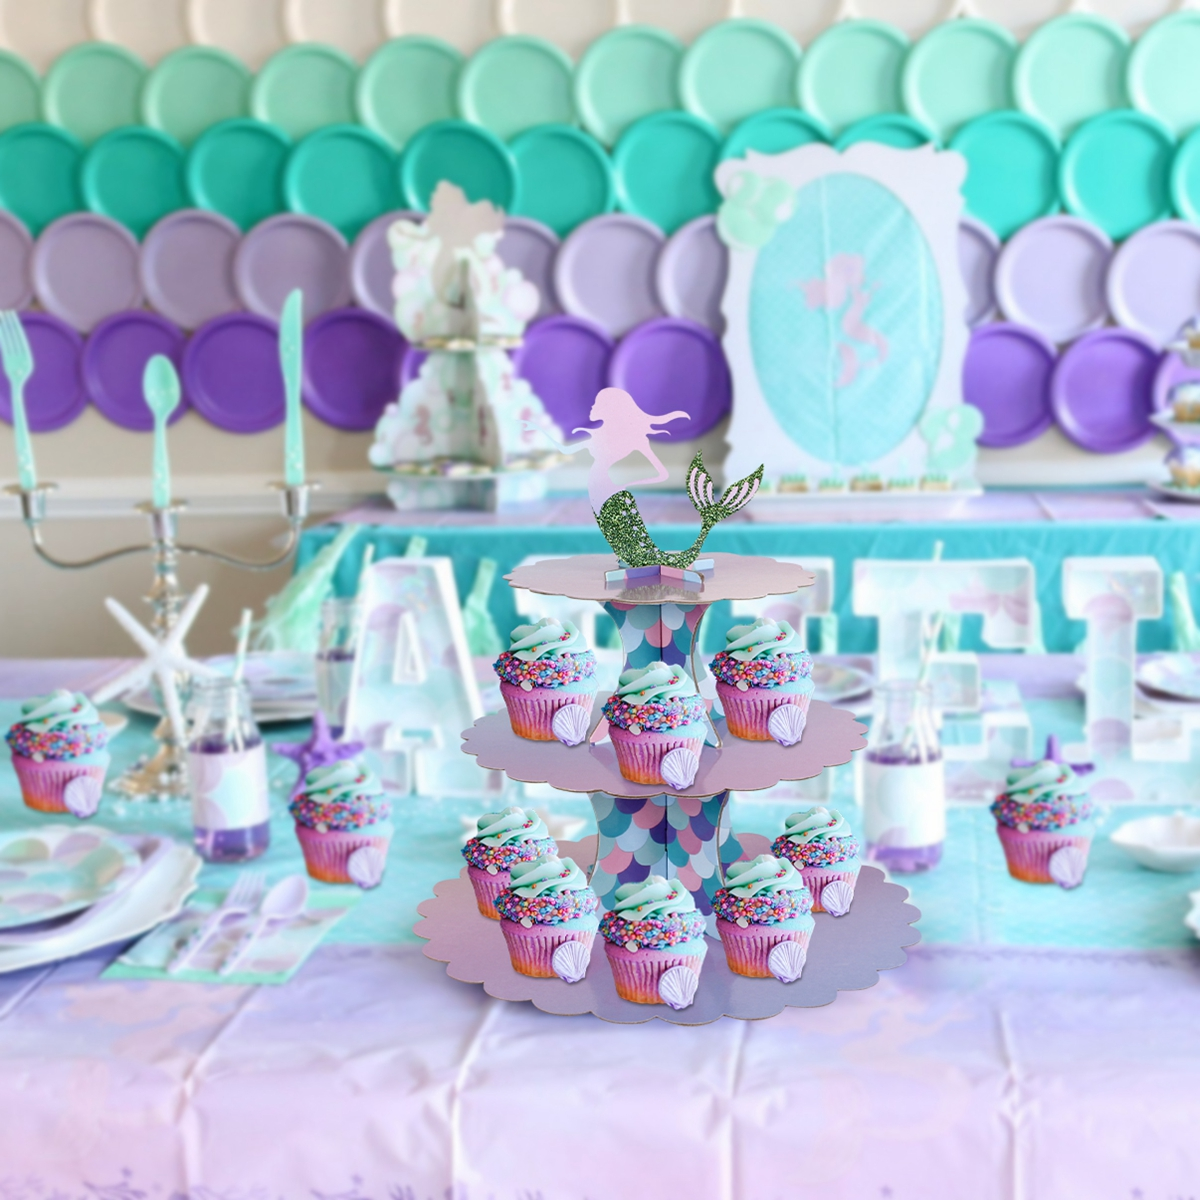 Patimate The Little Mermaid Party Decor Mermaid Birthday Party Decor Kids Wedding Party Decor Birthday Party Favors Baby Shower Buy At The Price Of 0 88 In Aliexpress Com Imall Com